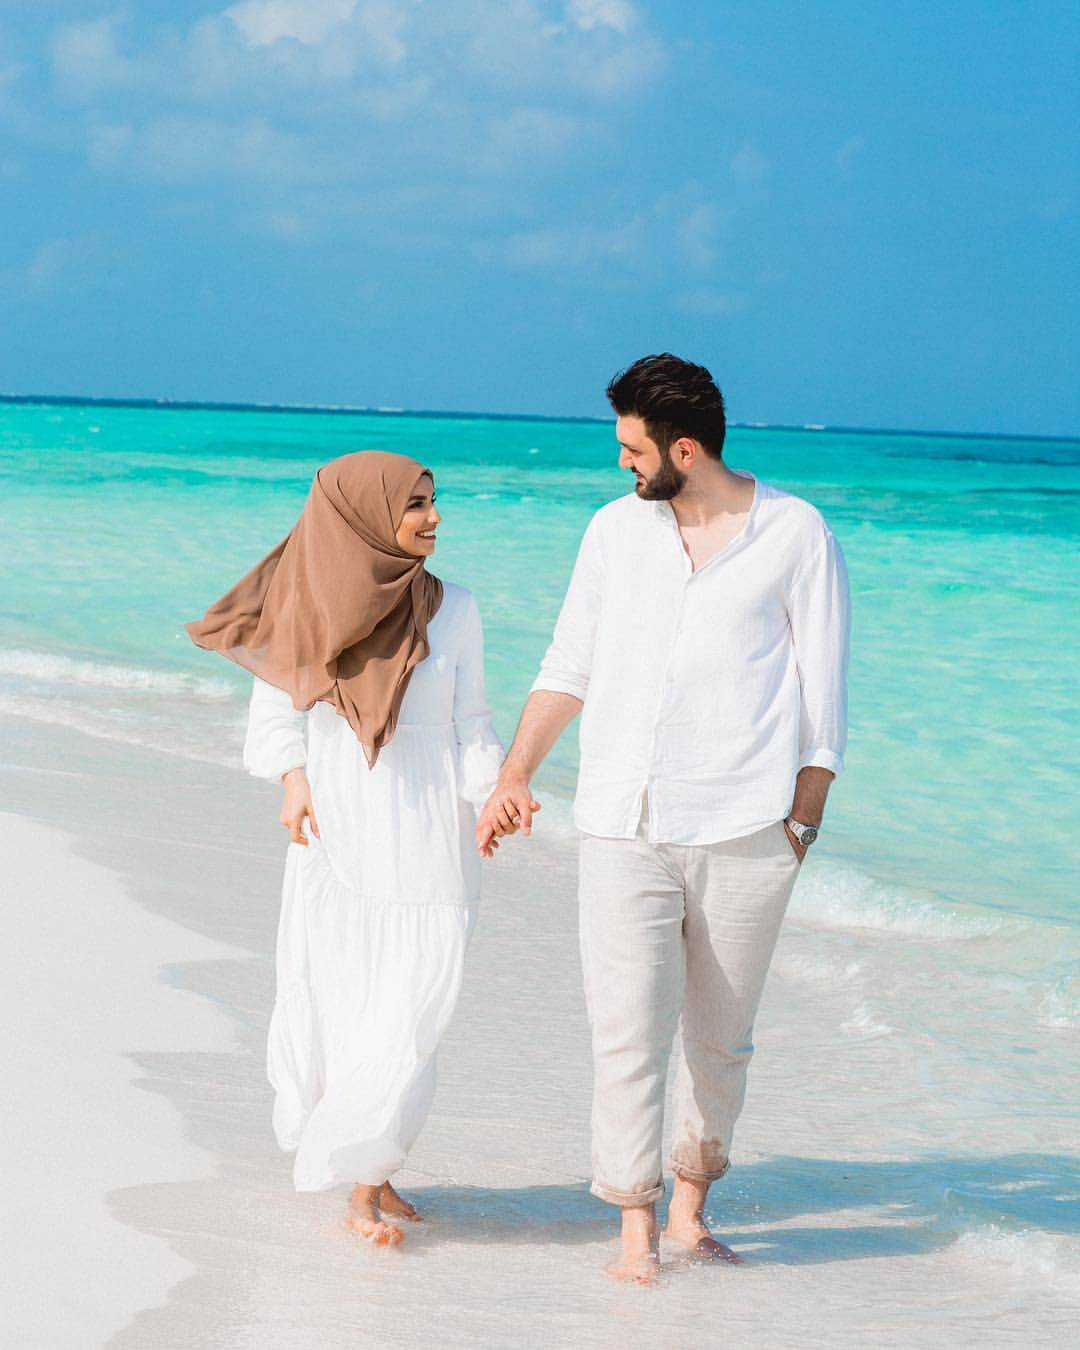 honeymoon outfit for beach